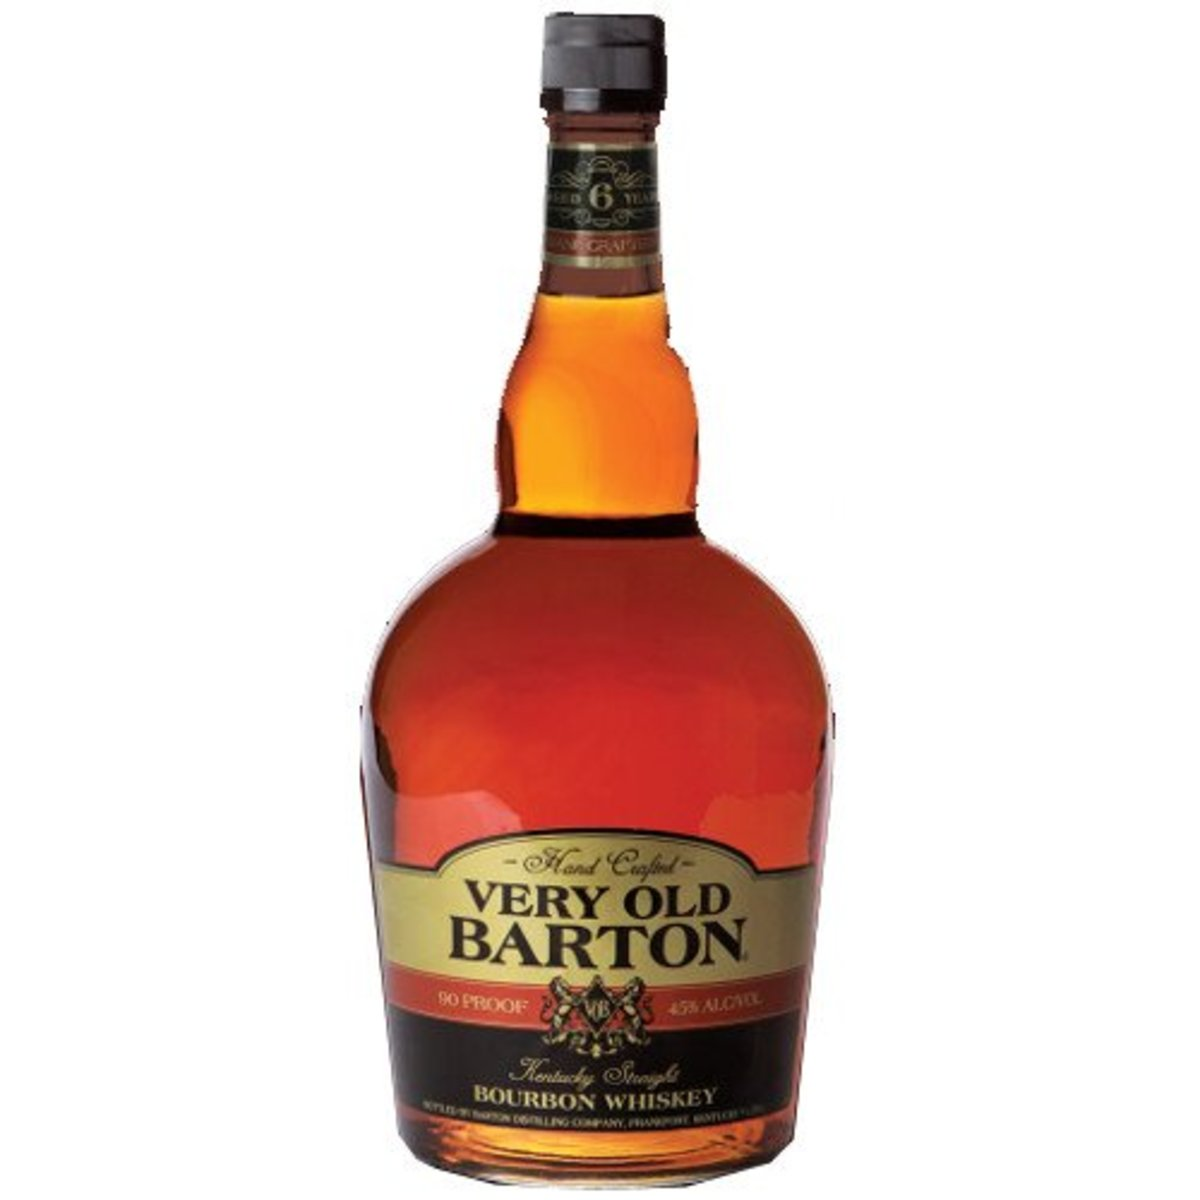 Very Old Barton 80 Proof. The best thing about this bourbon, apart from the exceptionally affordable price, is the silky smooth sugary taste, followed by the lingering soft finish.